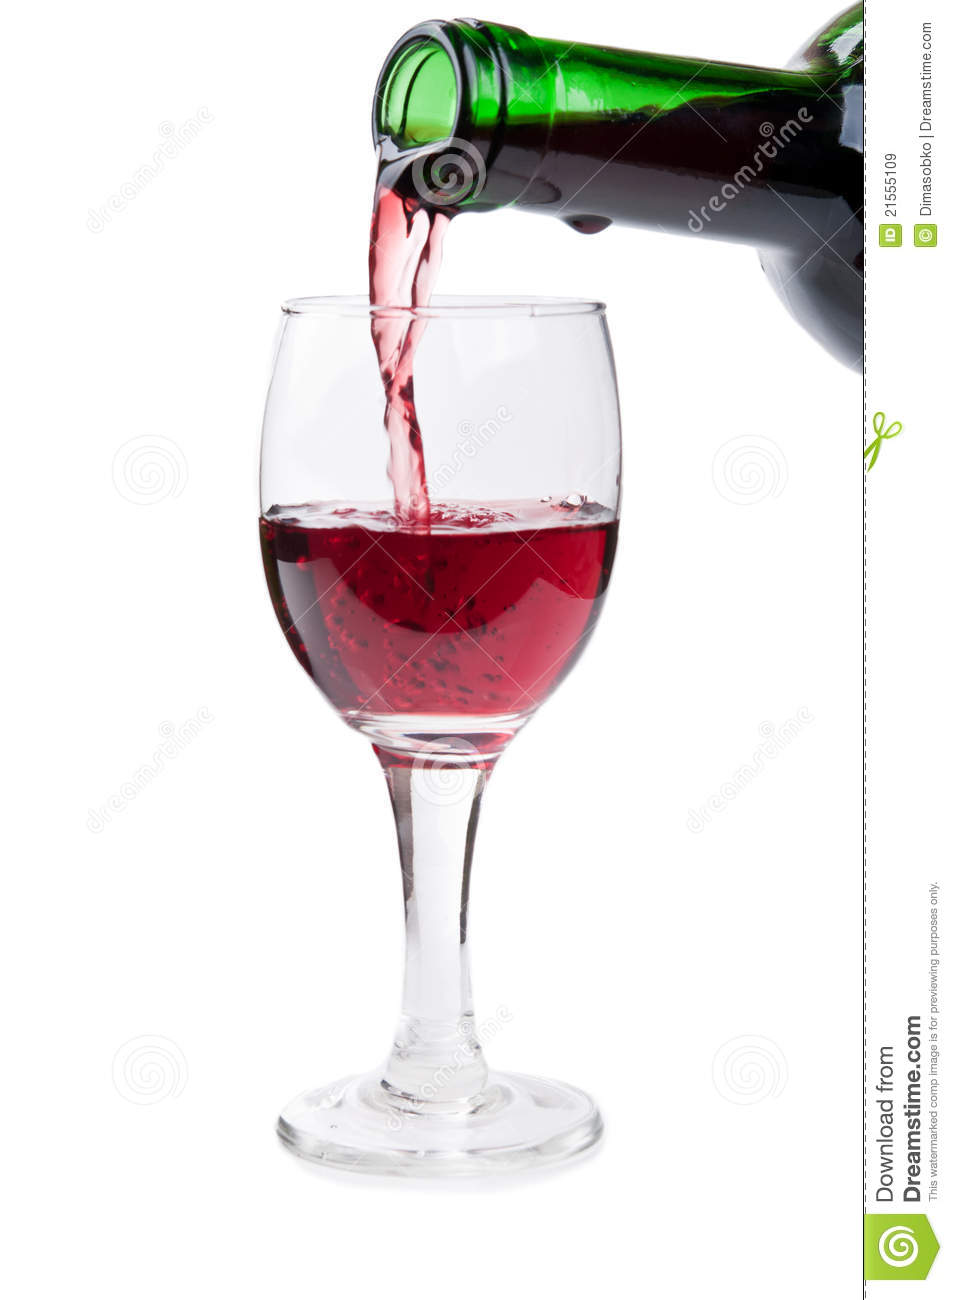 Glass and a bottle of wine royalty free stock images for Wine bottle glass